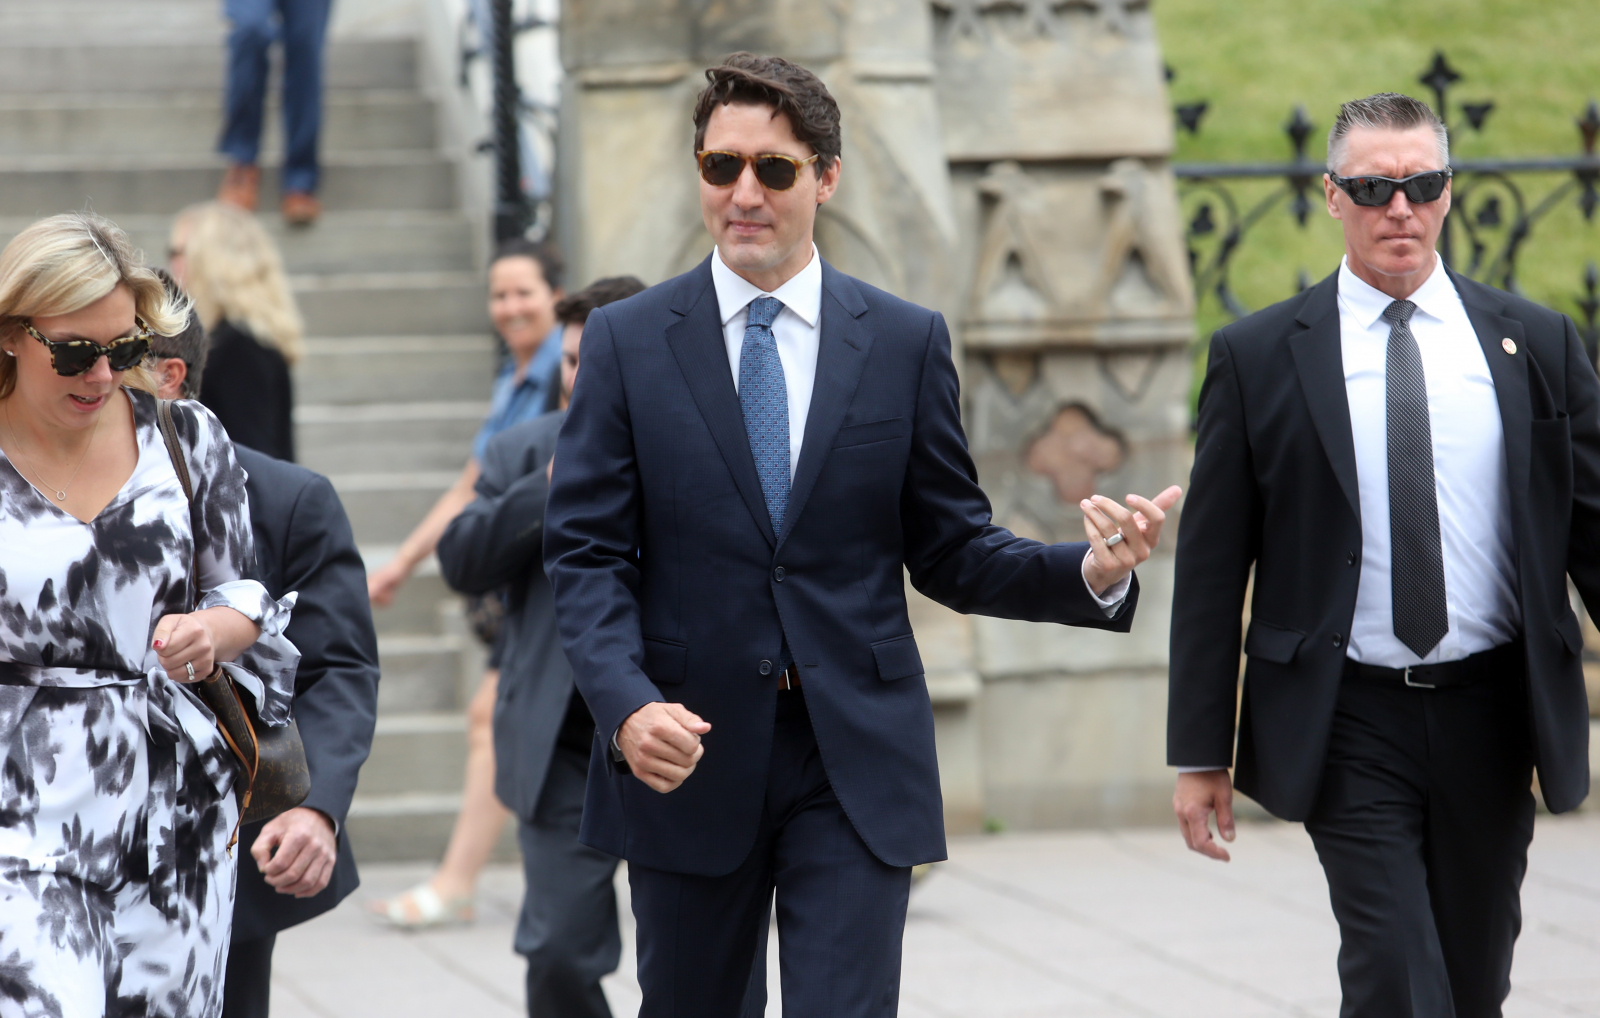 Watchdog Says Trudeau's Lavish Vacation Broke Ethics Rules